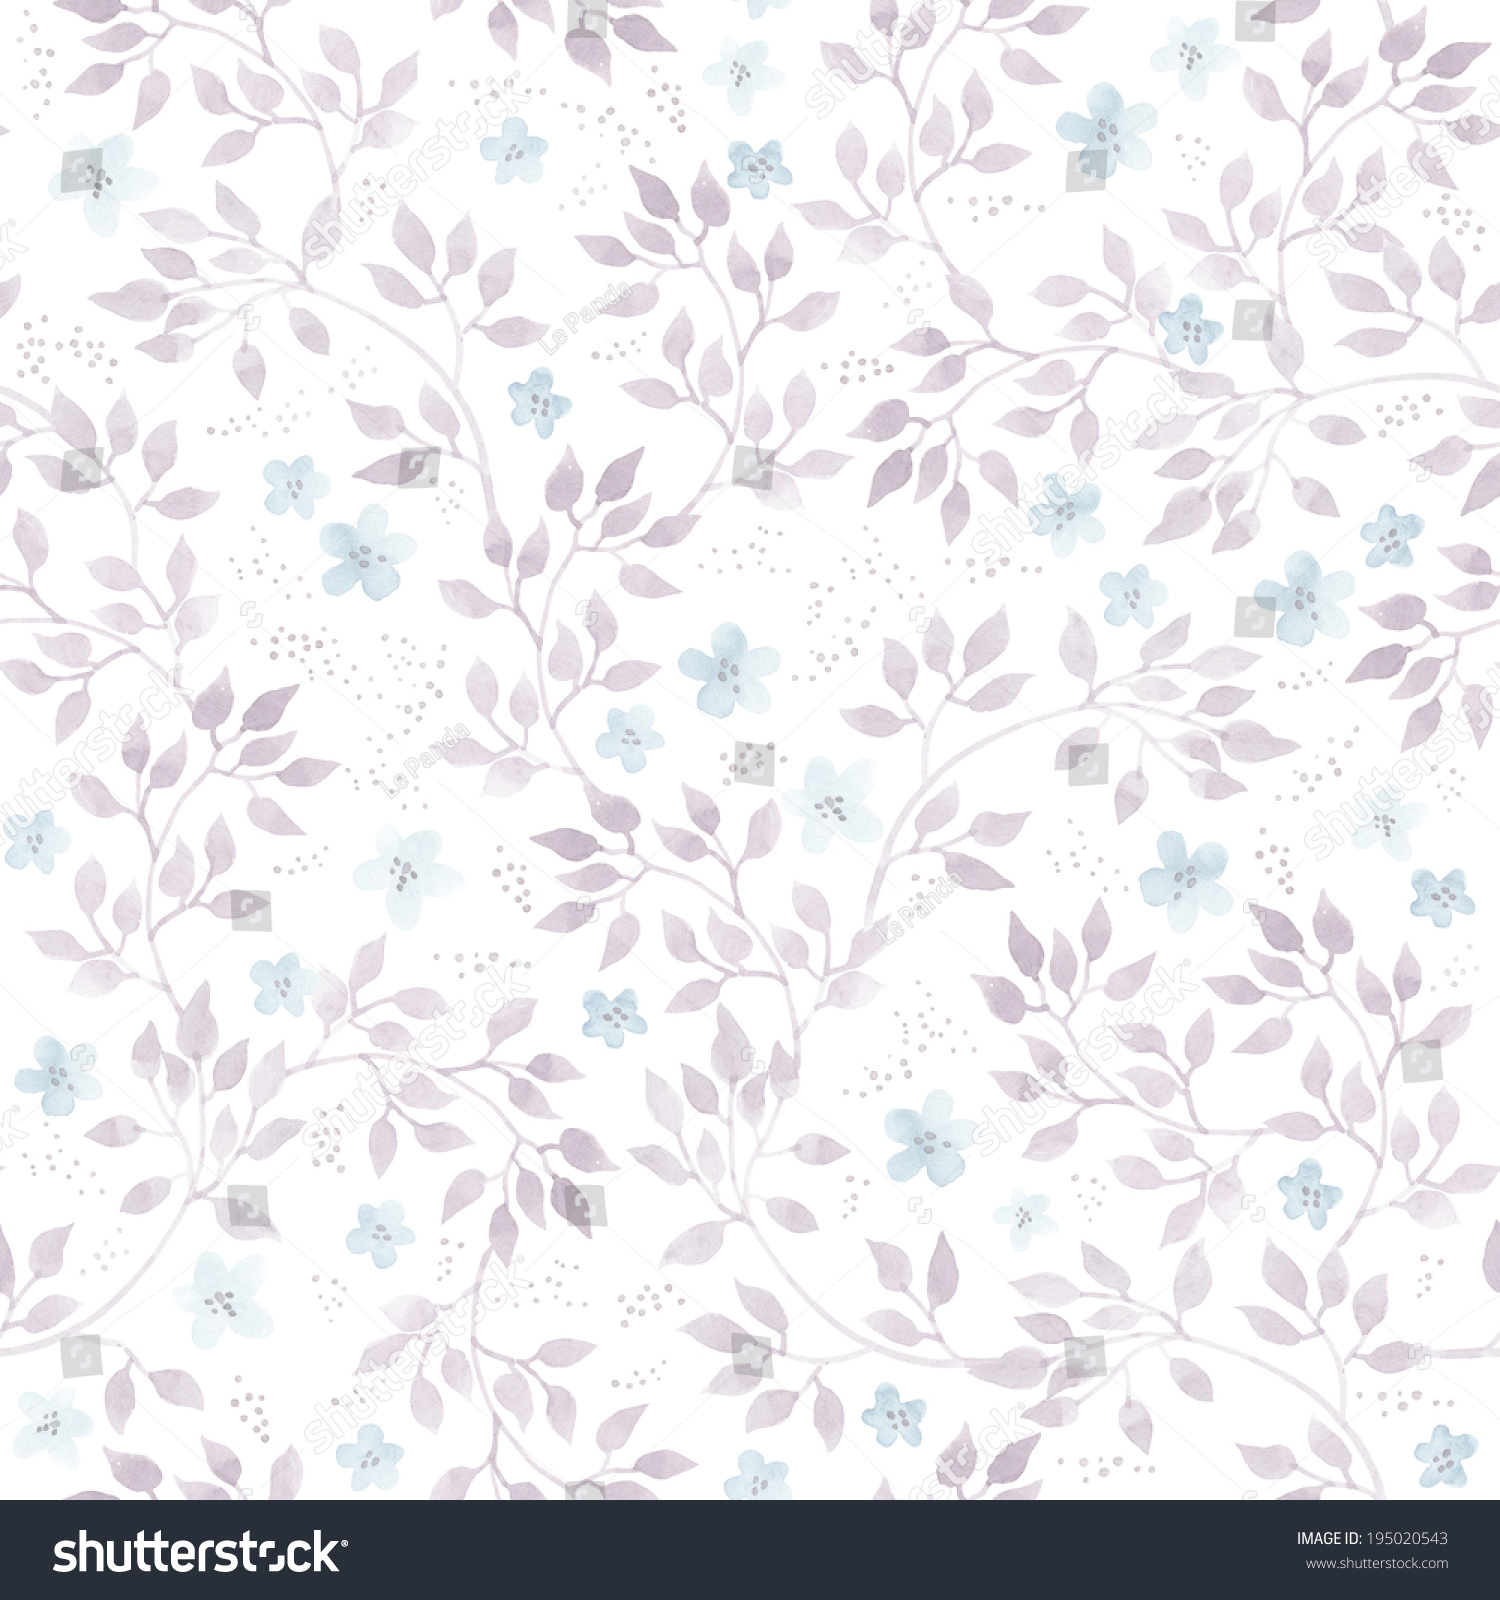 Royalty Free Floral Background Design Subtle Stock Images Photos